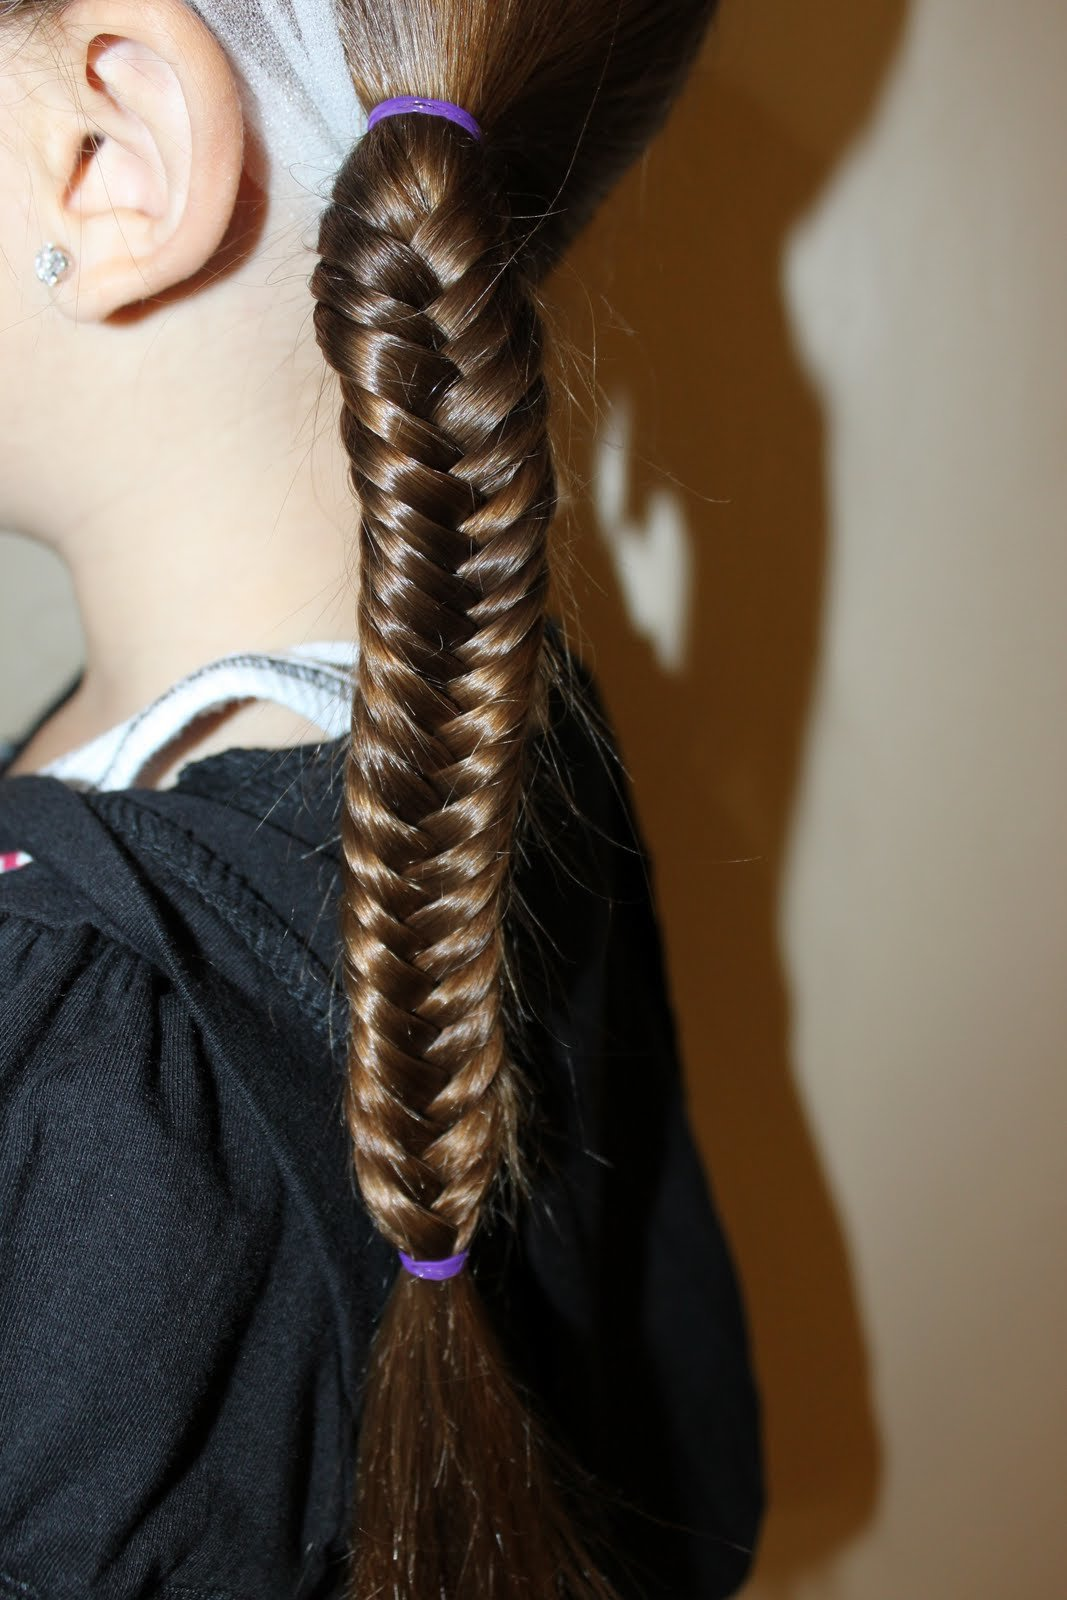 New Hairstyles For Girls The Wright Hair Fishtail Braids Ideas With Pictures